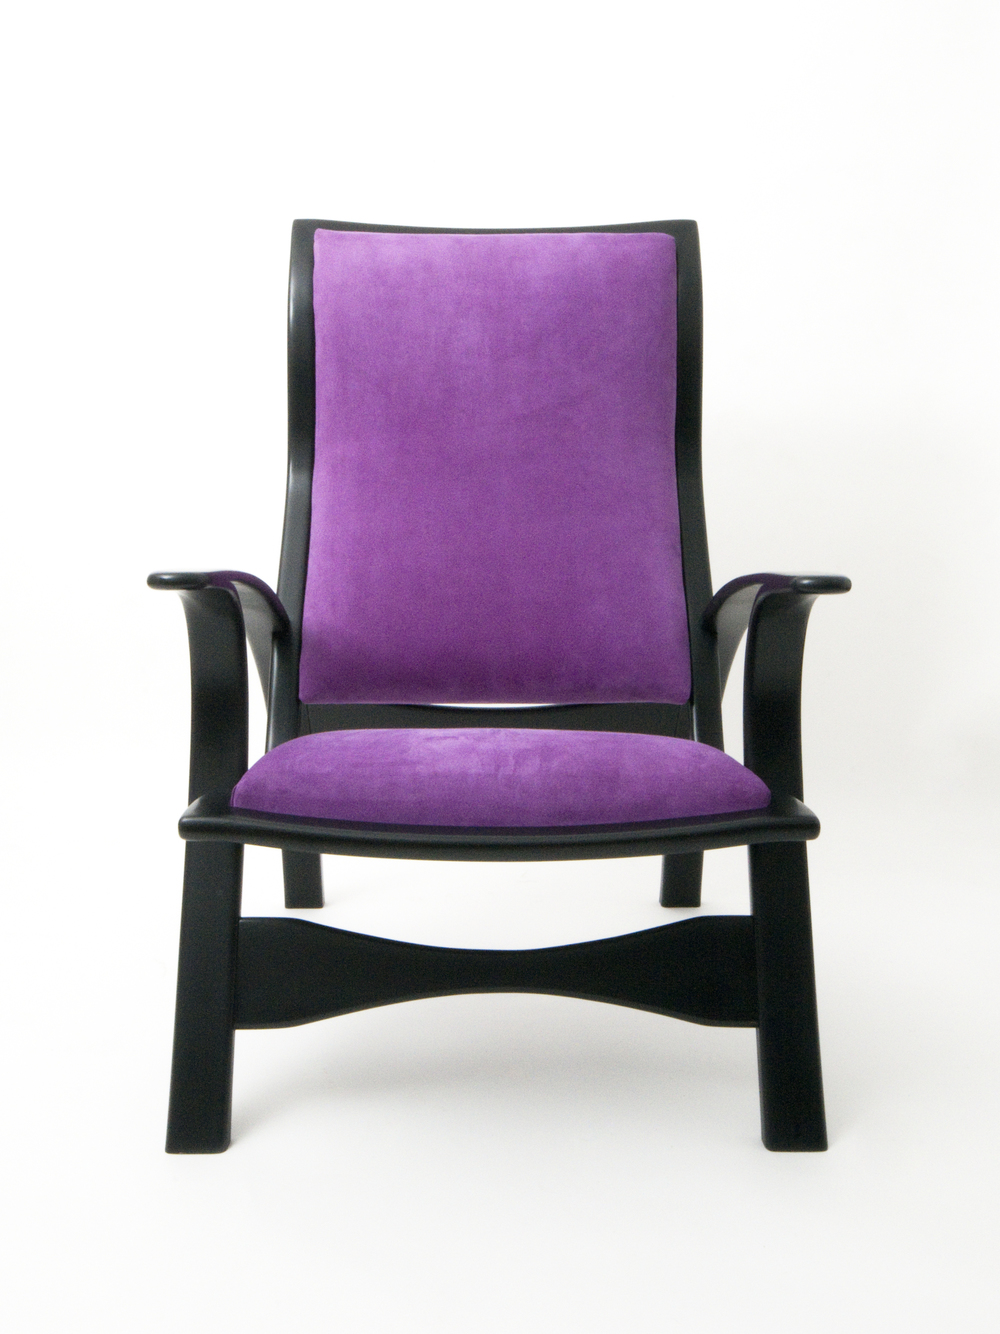 Crown royal chair4.jpg